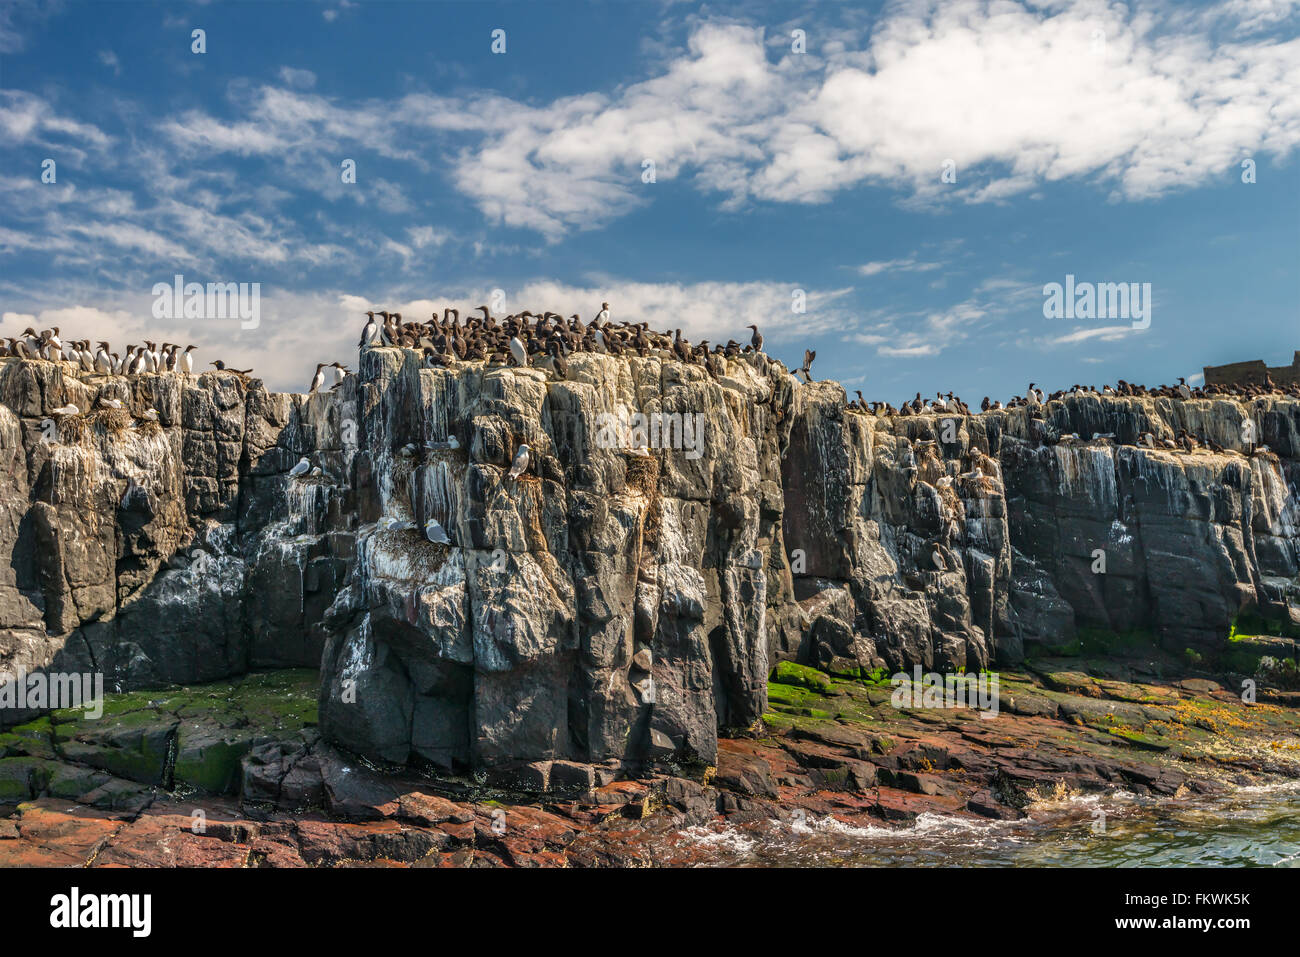 Seabirds including guillemots and kittiwakes nesting on cliffs in the Farne Islands, Northumberland, UK. May Stock Photo